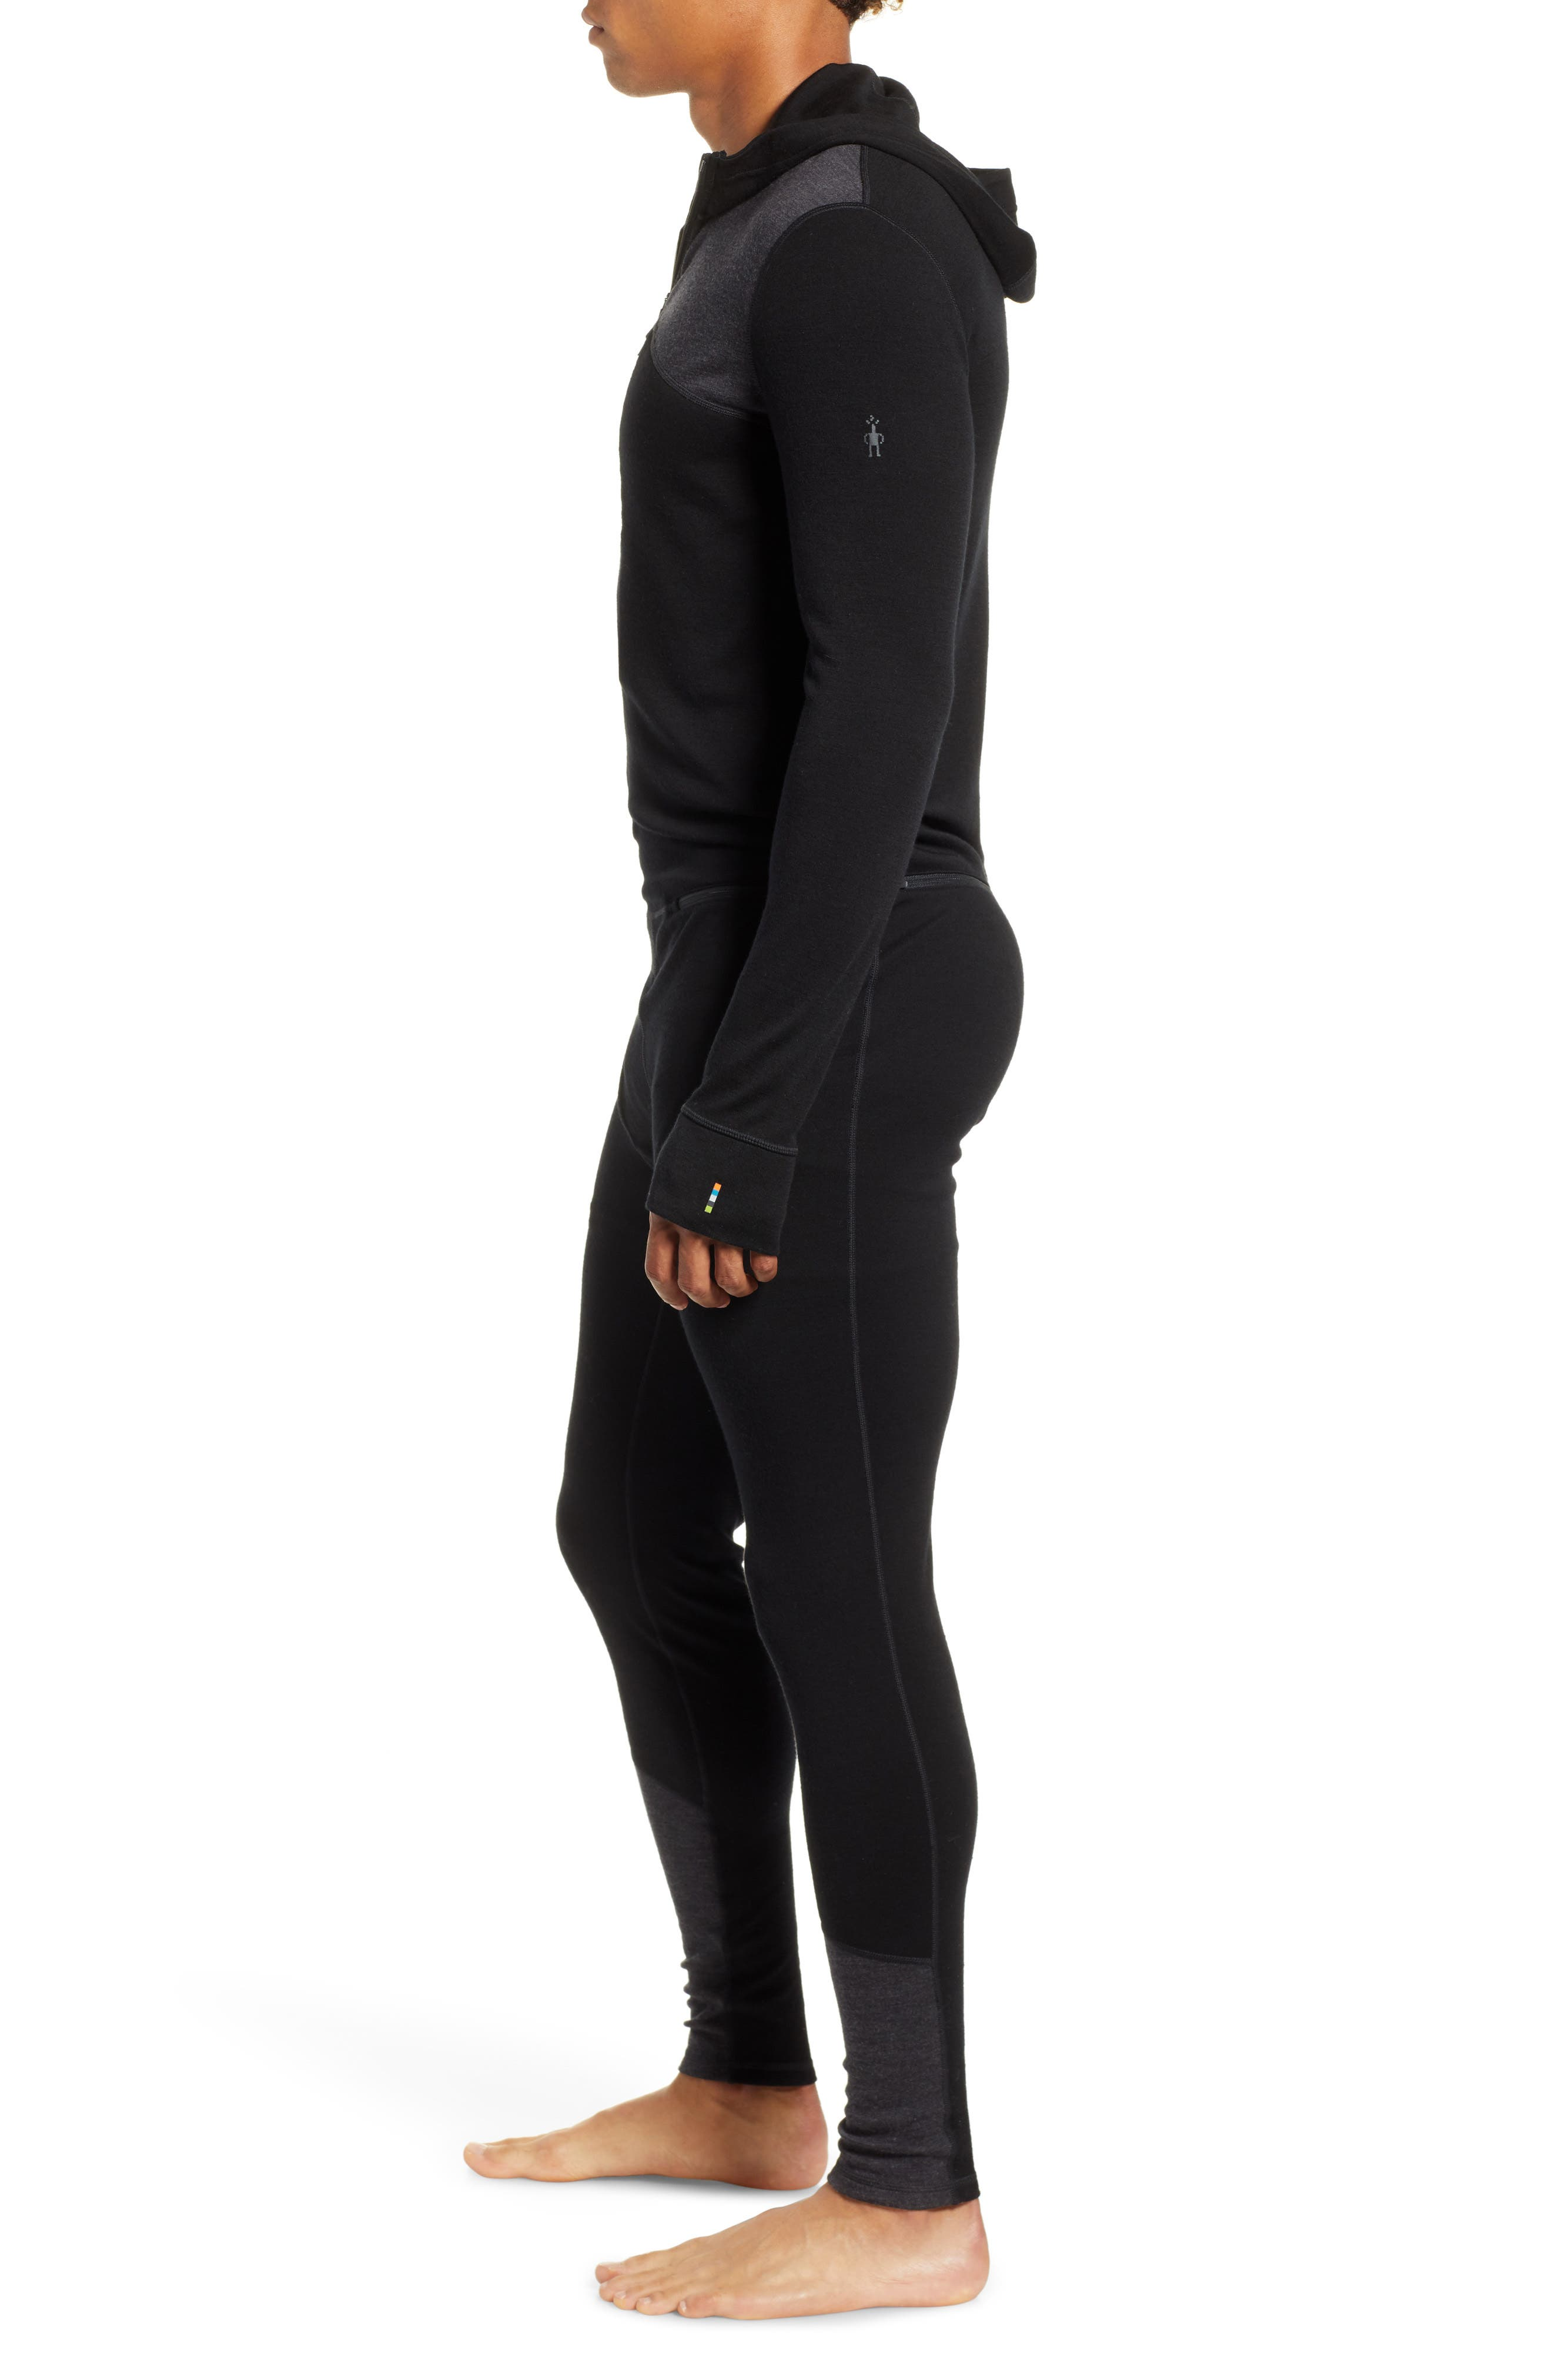 SMARTWOOL,                             Merino 250 Hooded One-Piece Base Layer,                             Alternate thumbnail 3, color,                             CHARCOAL/ BLACK